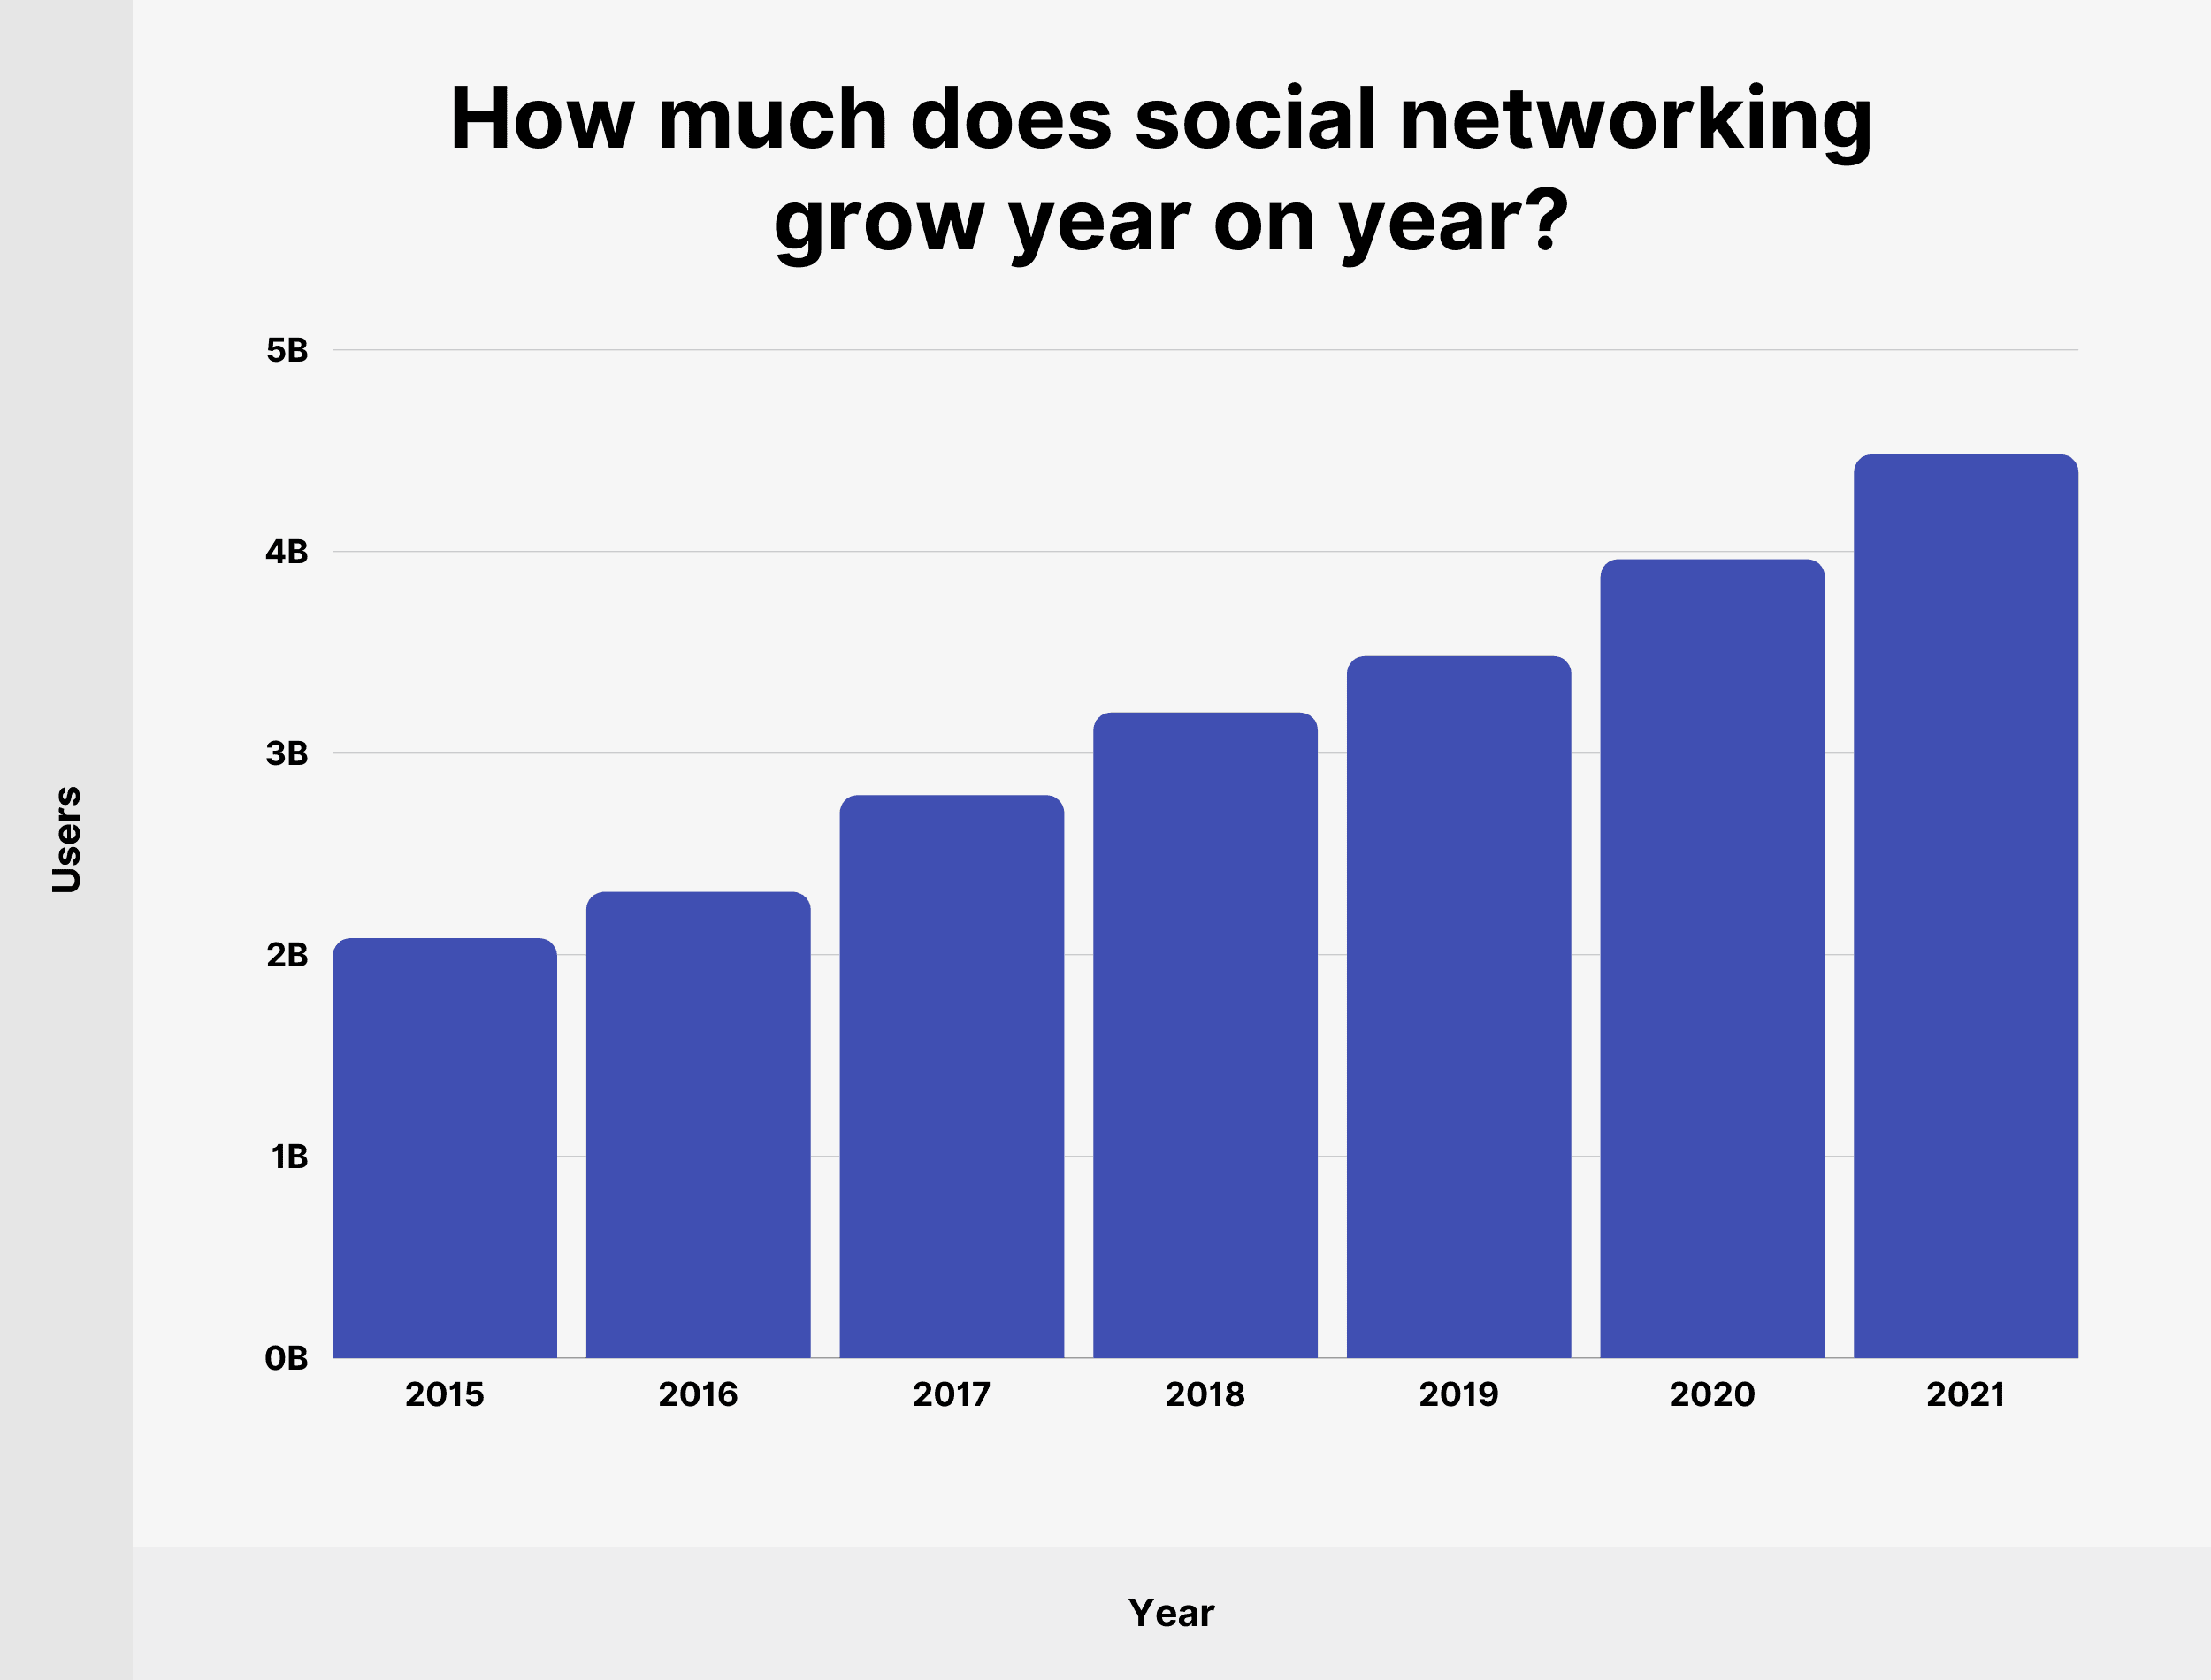 How much does social networking grow year on year?